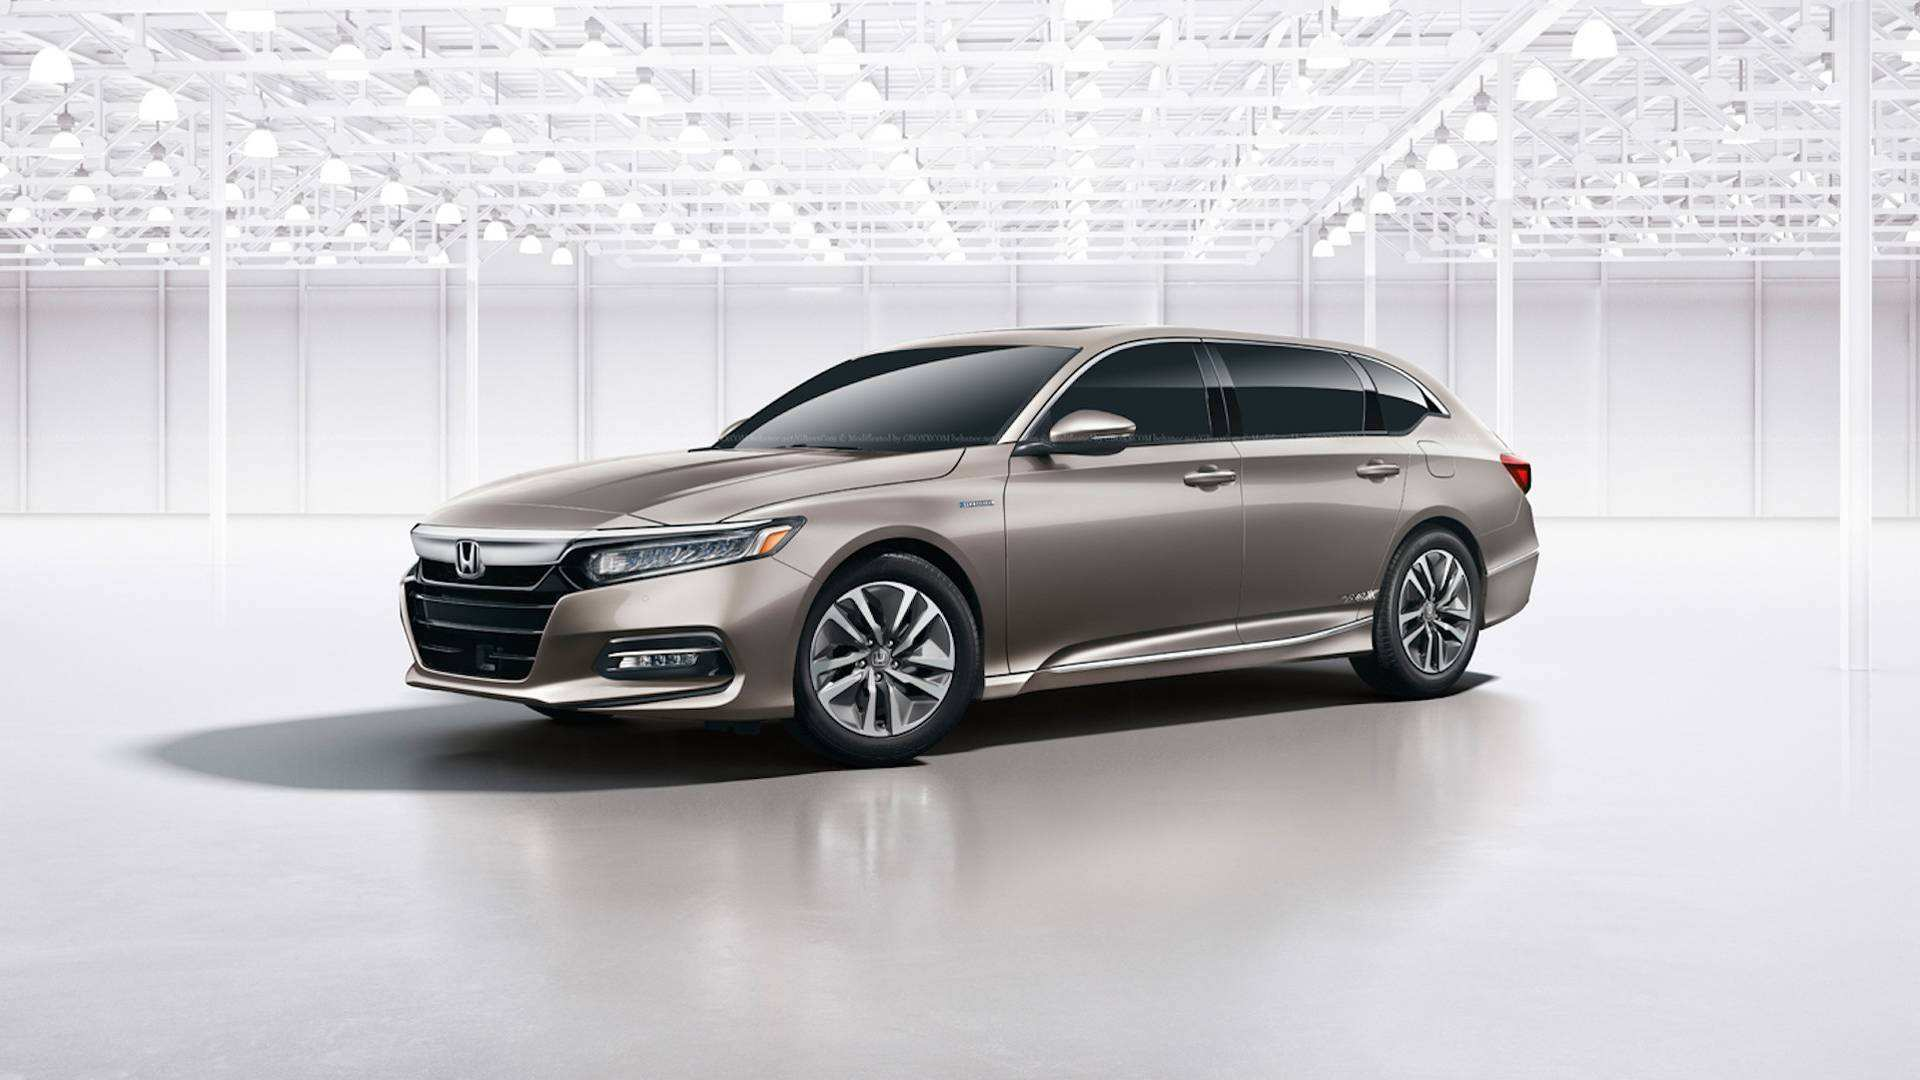 12 Great 2019 Honda Wagon Specs and Review for 2019 Honda Wagon